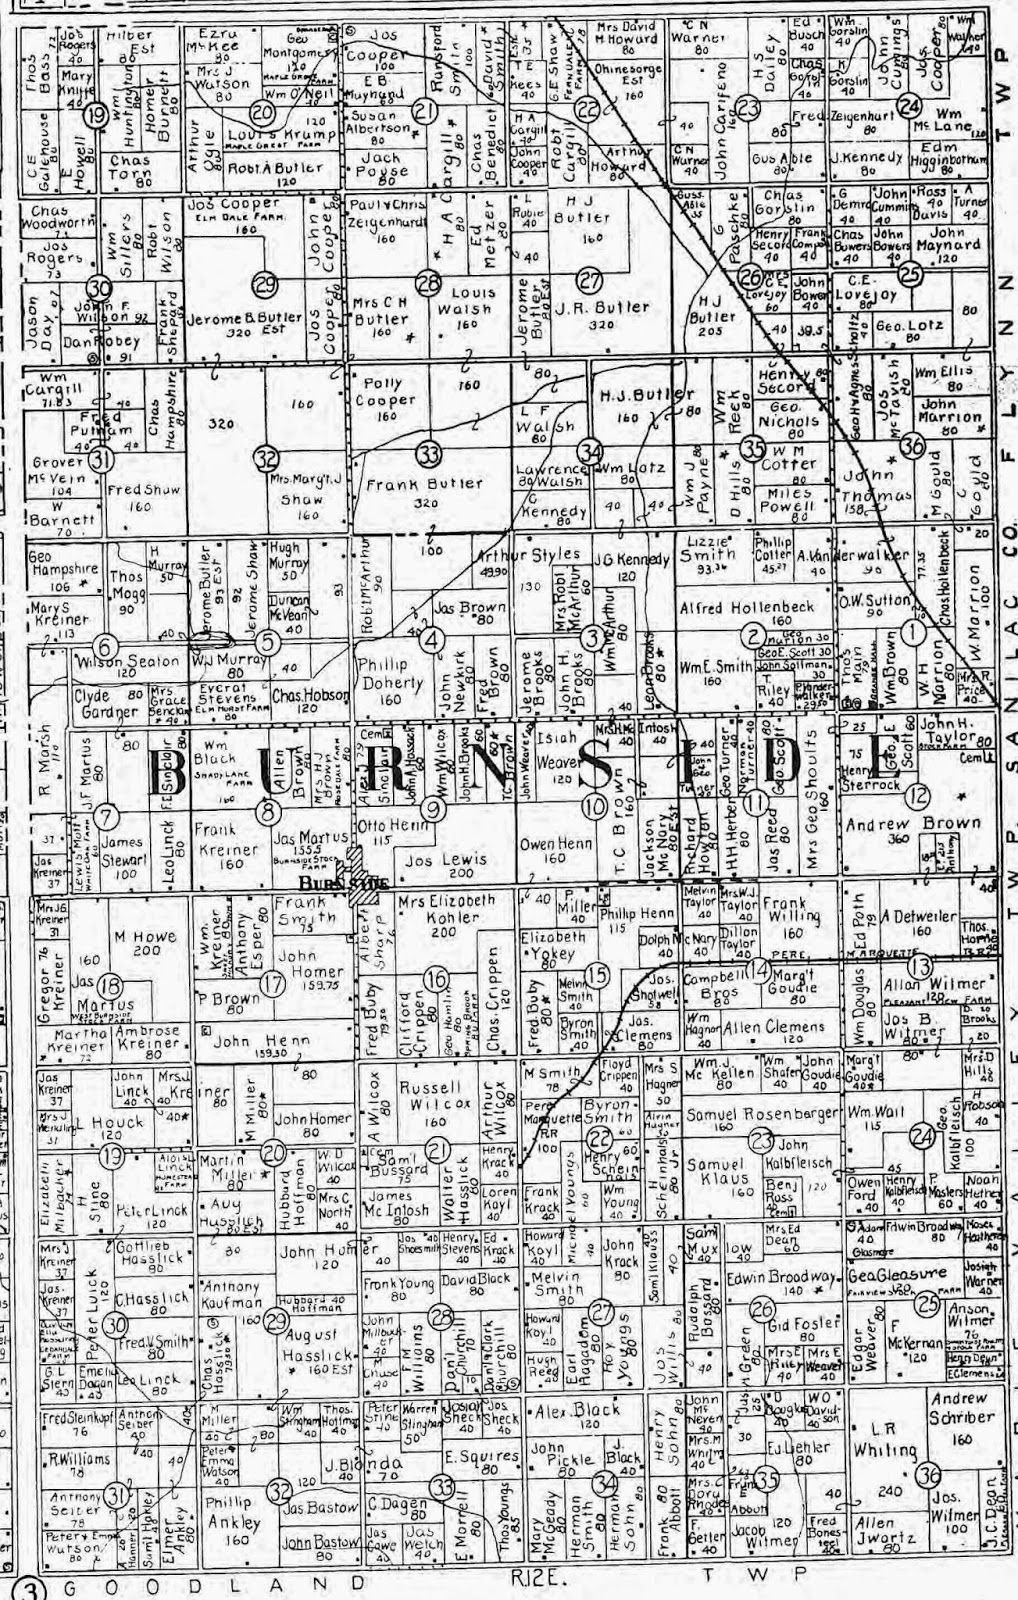 Climbing My Family Tree: 1915 Land Record for Burnside Township Michigan